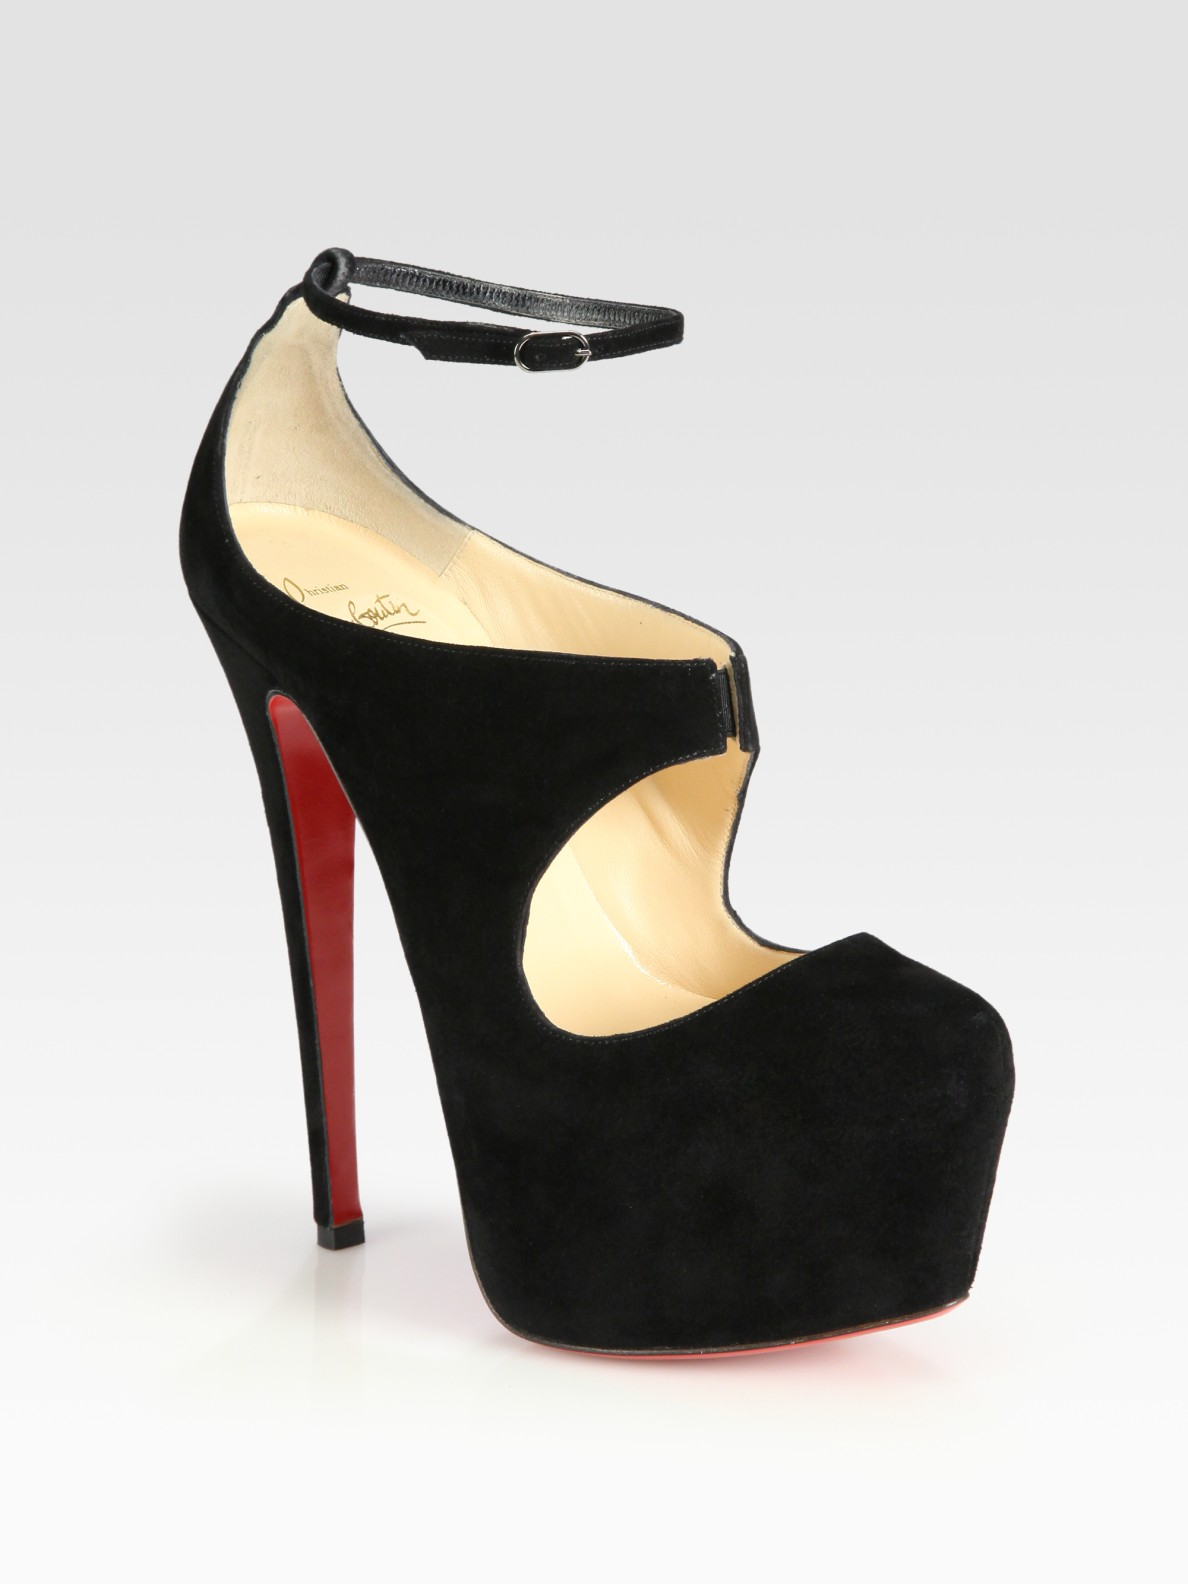 lyst christian louboutin maillot suede mary jane platform pumps in black. Black Bedroom Furniture Sets. Home Design Ideas